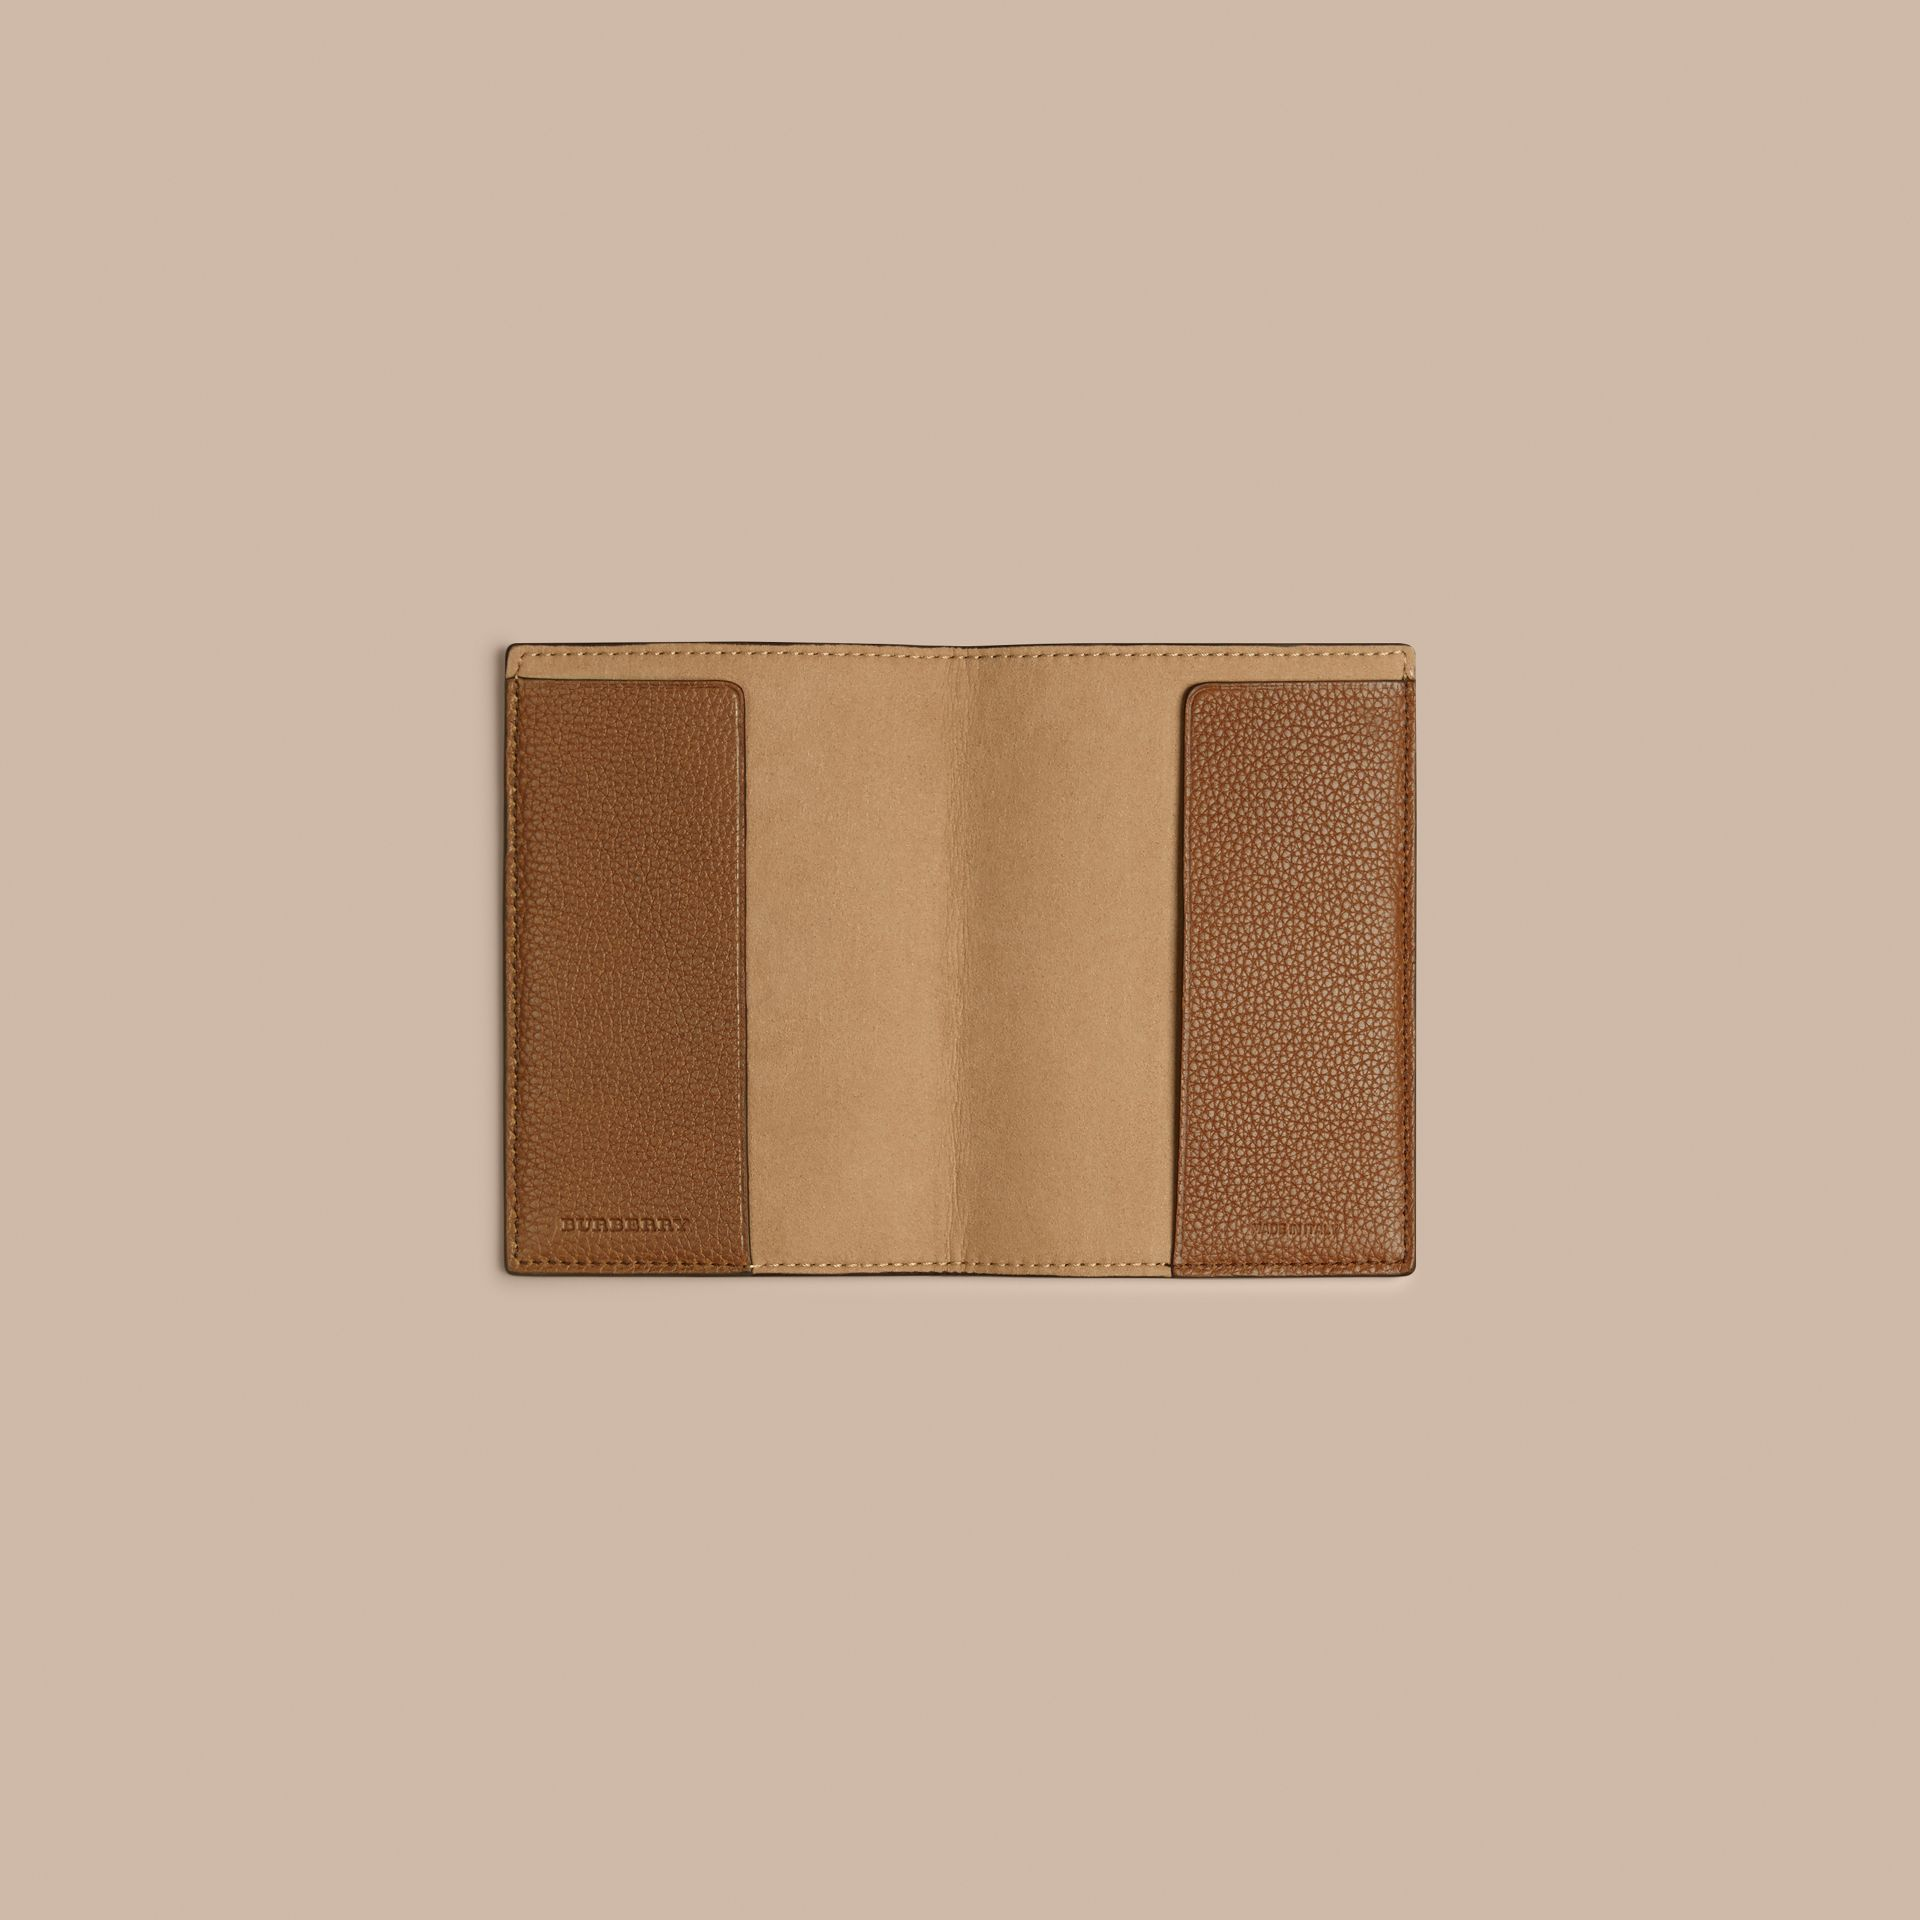 Grainy Leather Passport Cover in Tan | Burberry Australia - gallery image 3